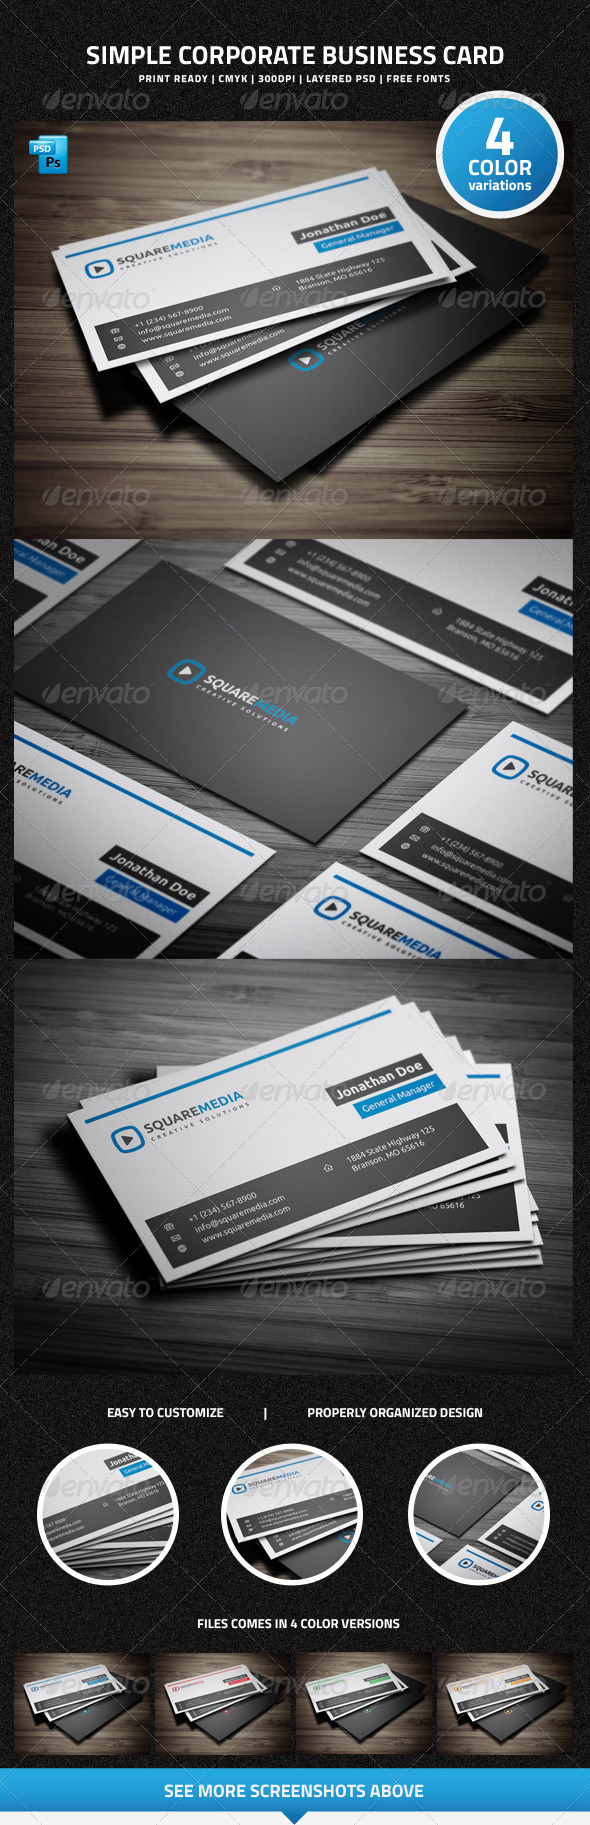 GraphicRiver Simple Corporate Business Card 6359870